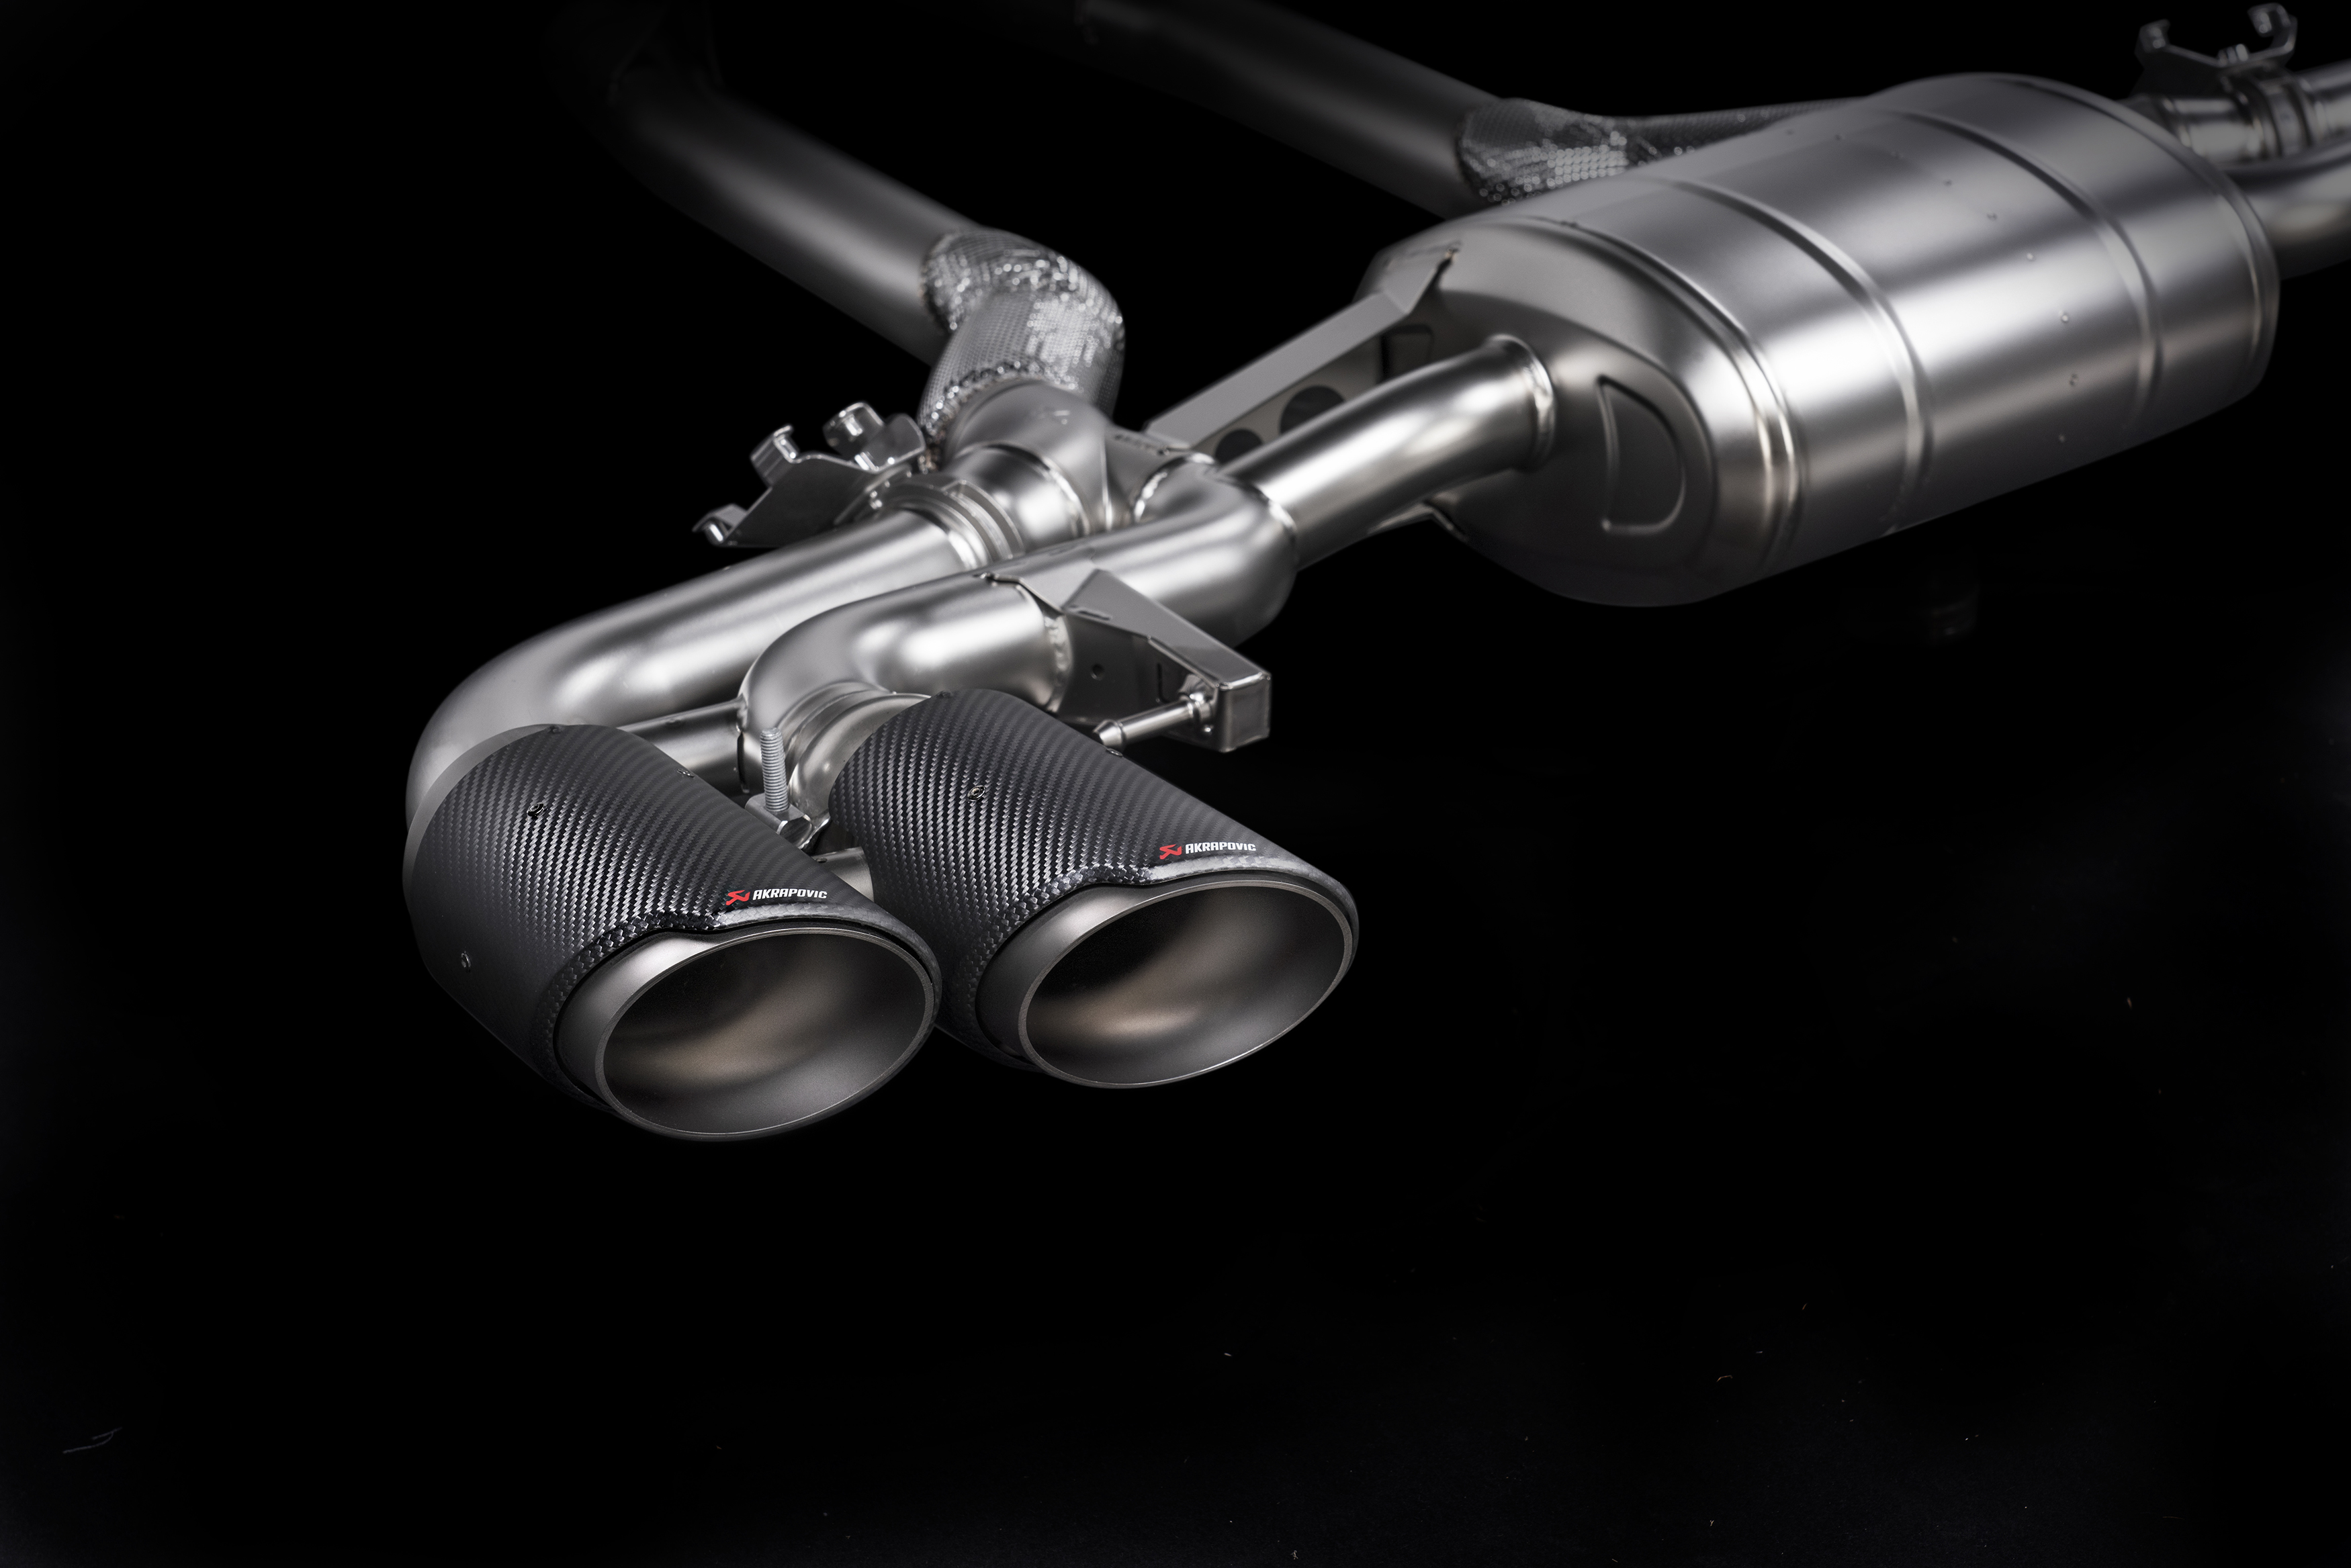 Akrapovic exhaust system for the BMW X5M (F95) and BMW X6M (F96)